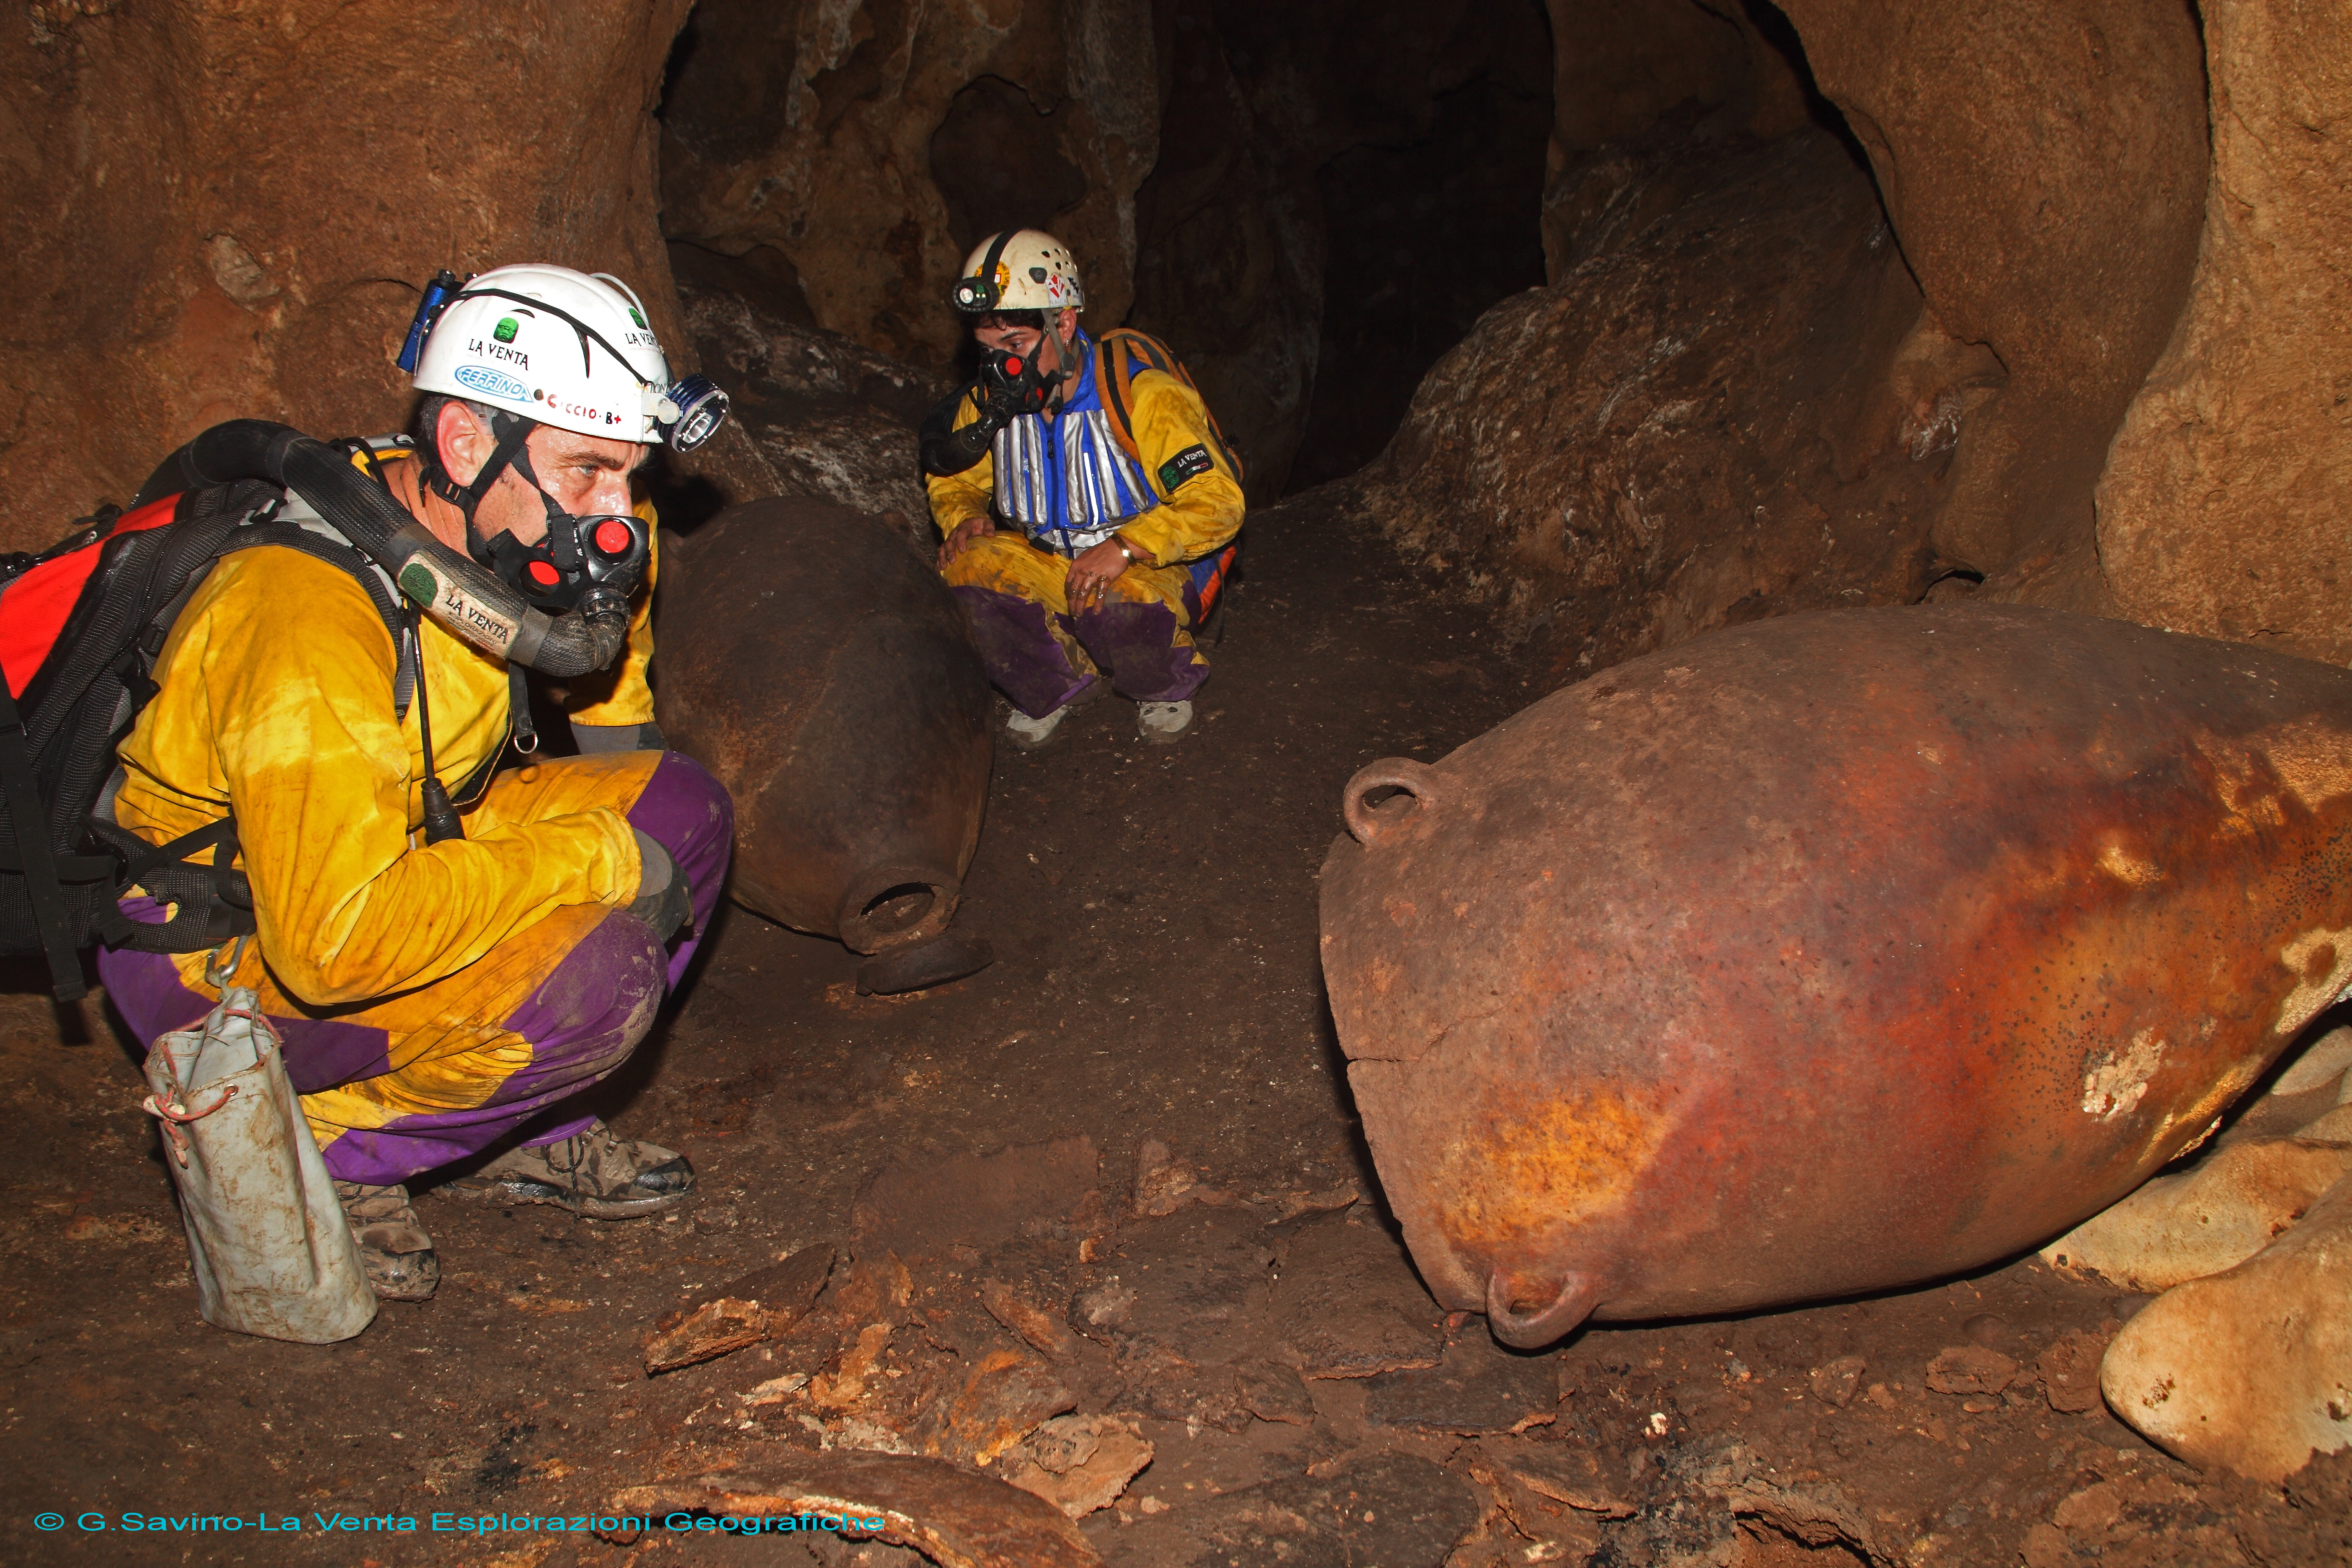 Prehistoric wine discovered in inaccessible caves forces a rethink of ancient Sicilian culture